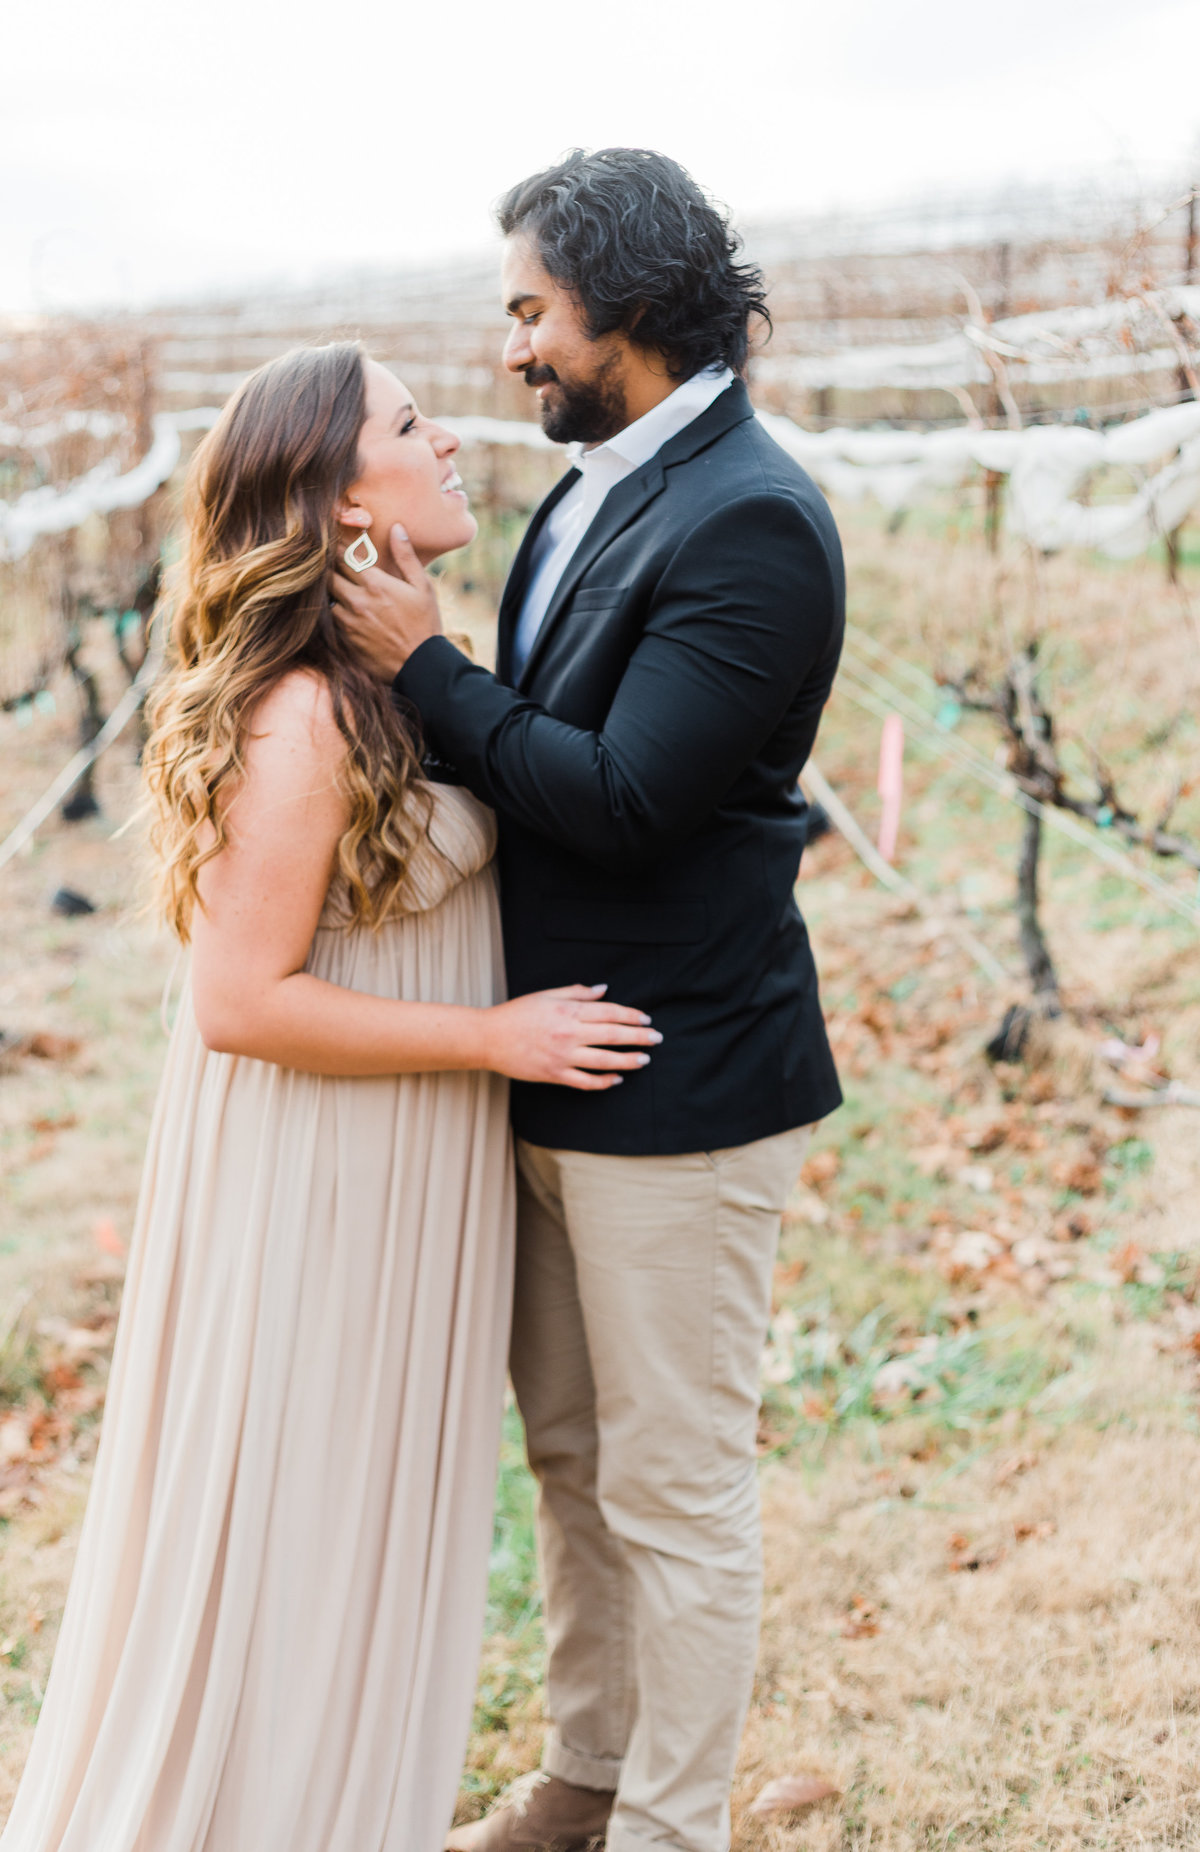 Motaluce Winery, Gainesville, GA Couple Engagement Anniversary Photography Session by Renee Jael-18